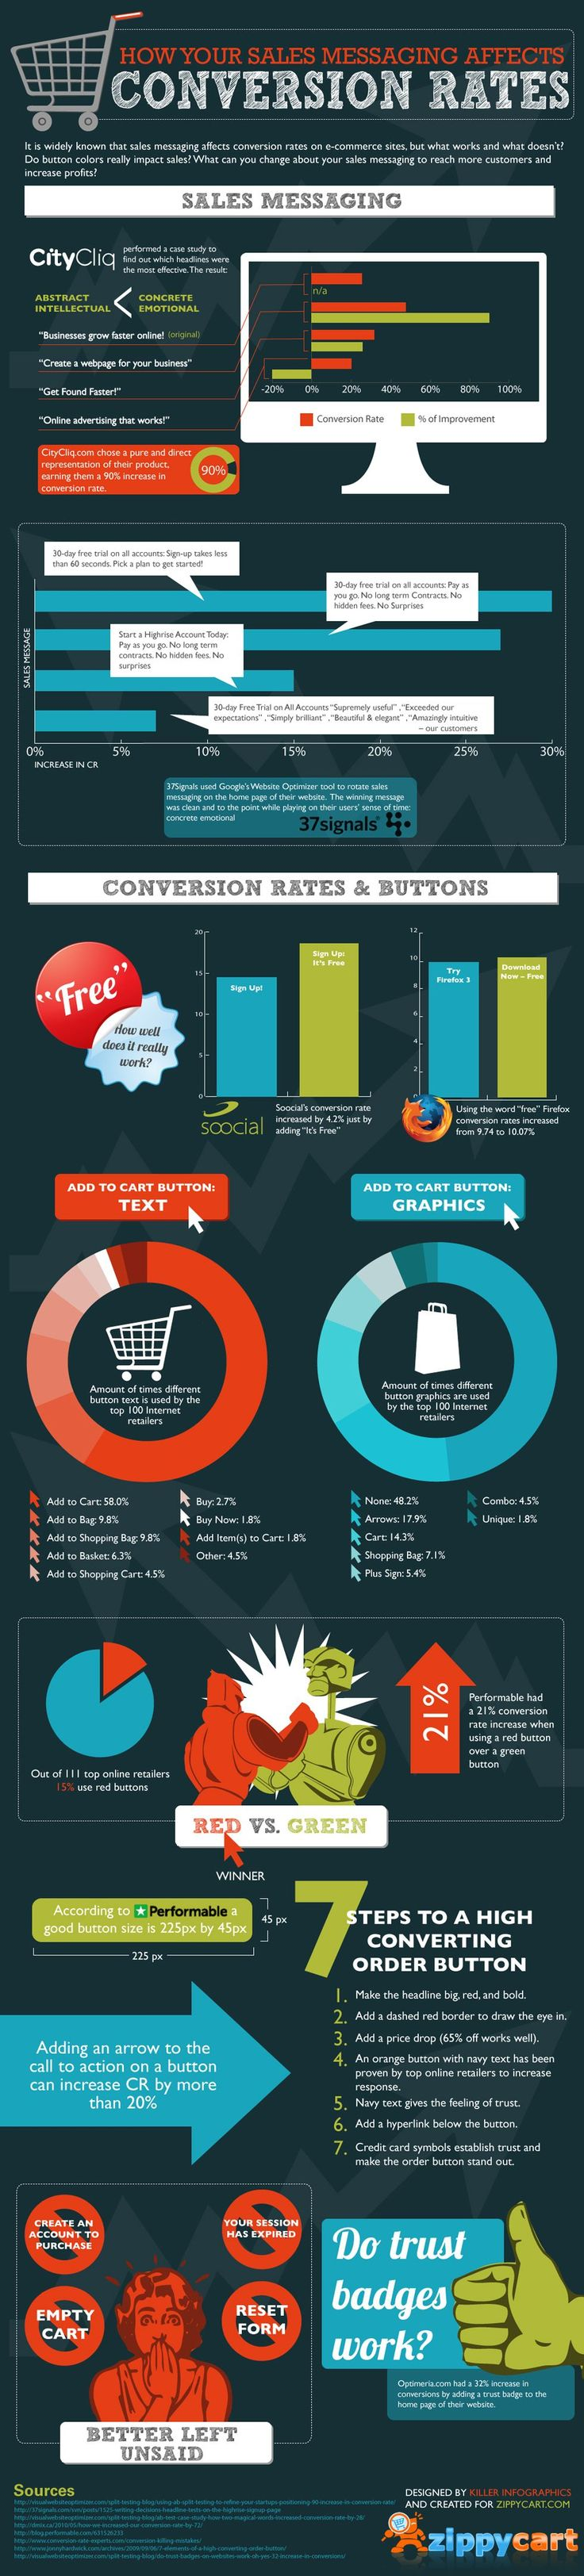 Wow... 10 handy rules to get your e-commerce site smoking... Conversion Rates Info Graphic